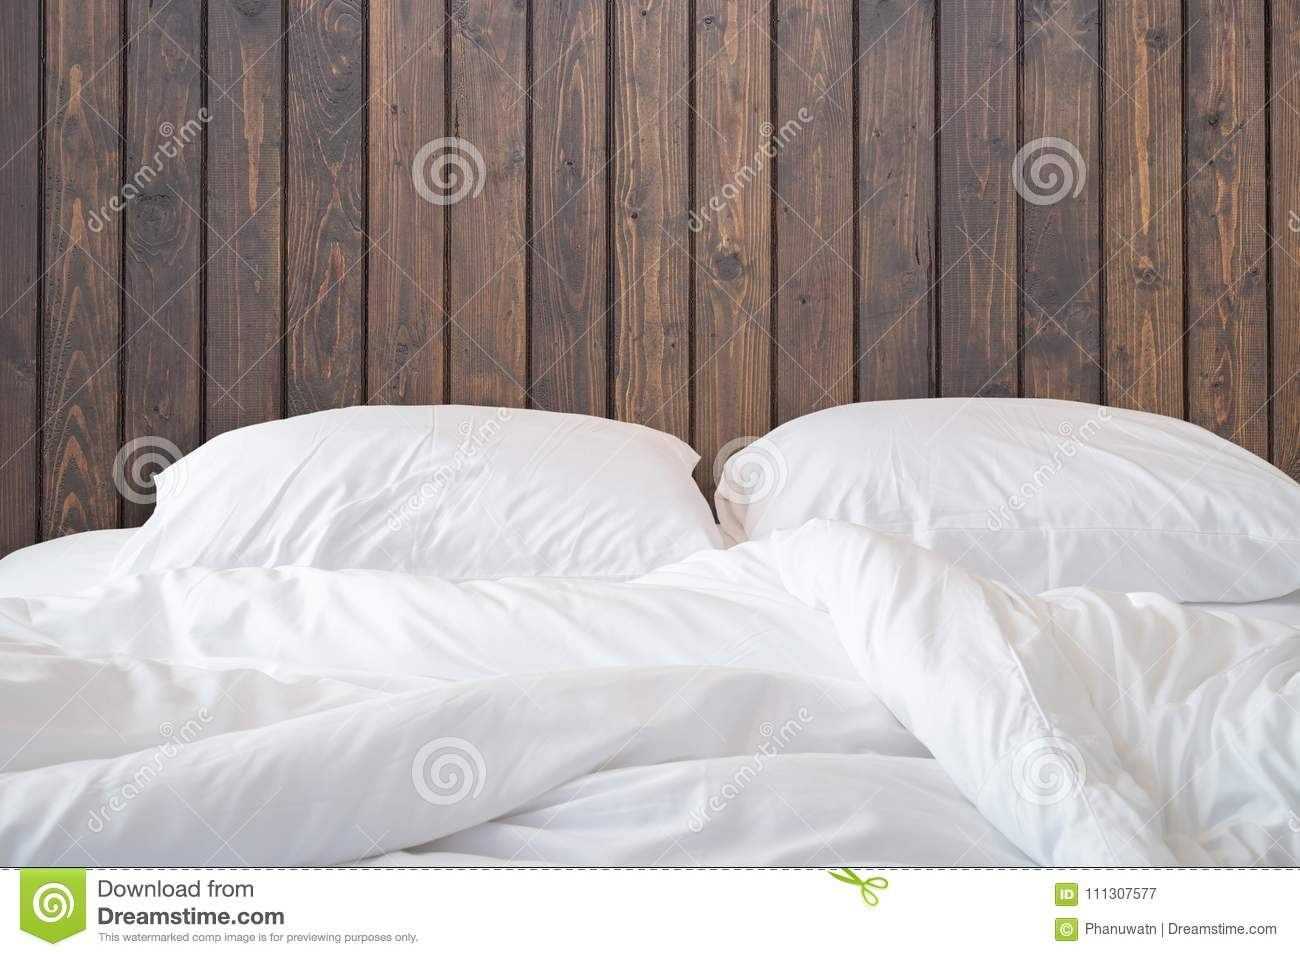 White bed sheets background Cotton Close Up White Bedding Sheets And Pillow On Wooden Wall Room Background Messy Bed Concept Dreamstimecom White Bedding Sheets And Pillow On Wooden Wall Room Background